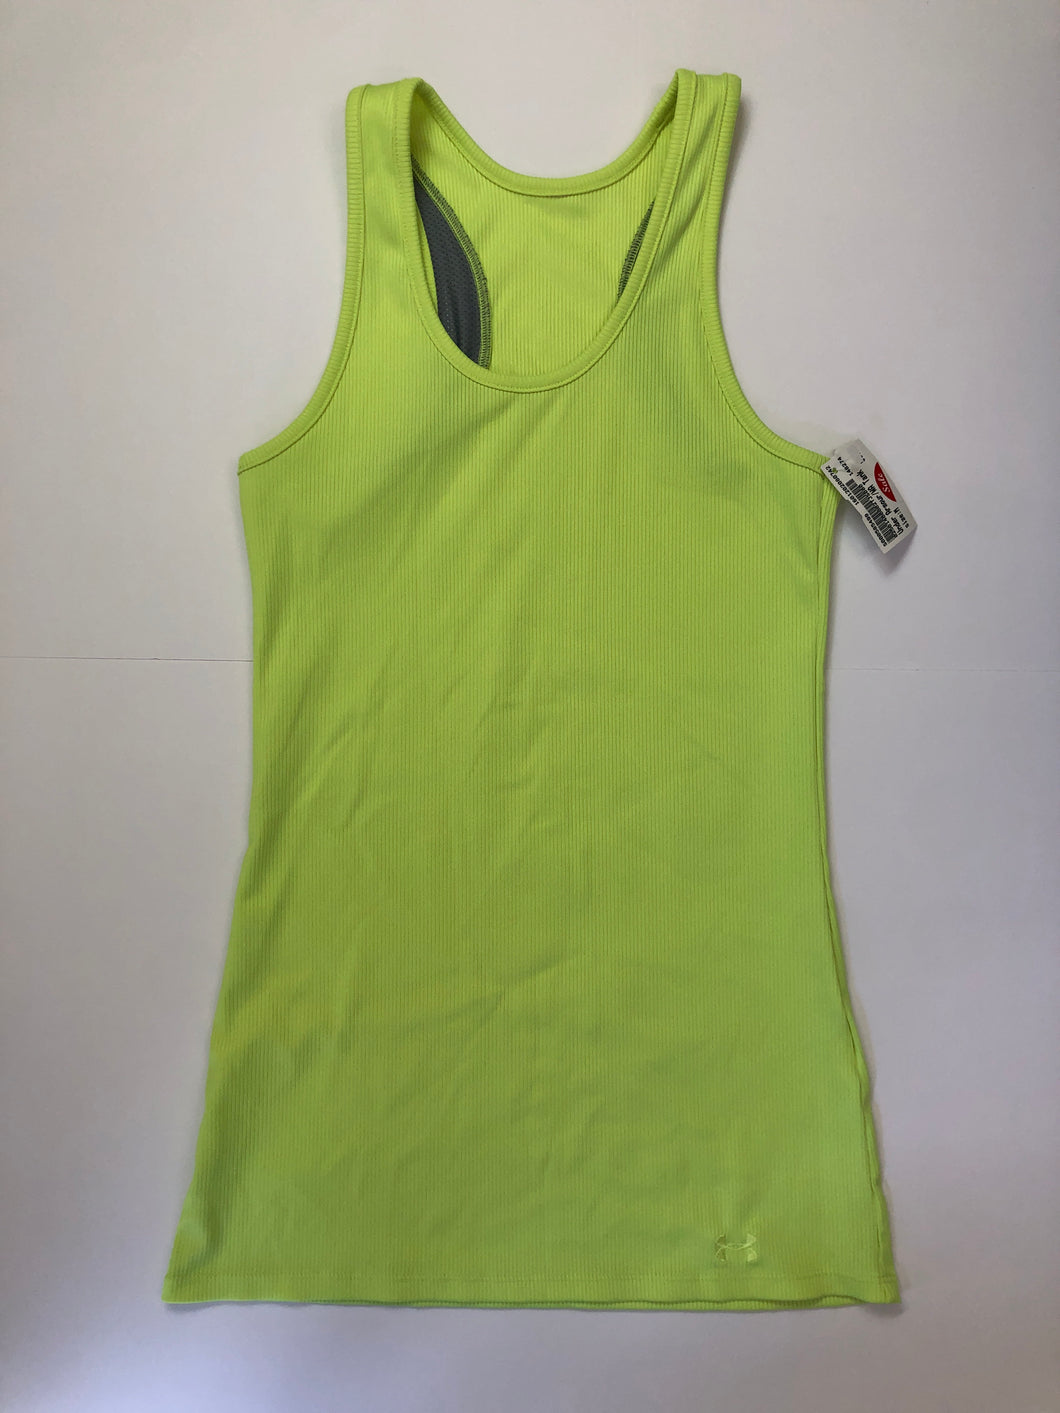 Gently Used Women's Under Armour Top Size M